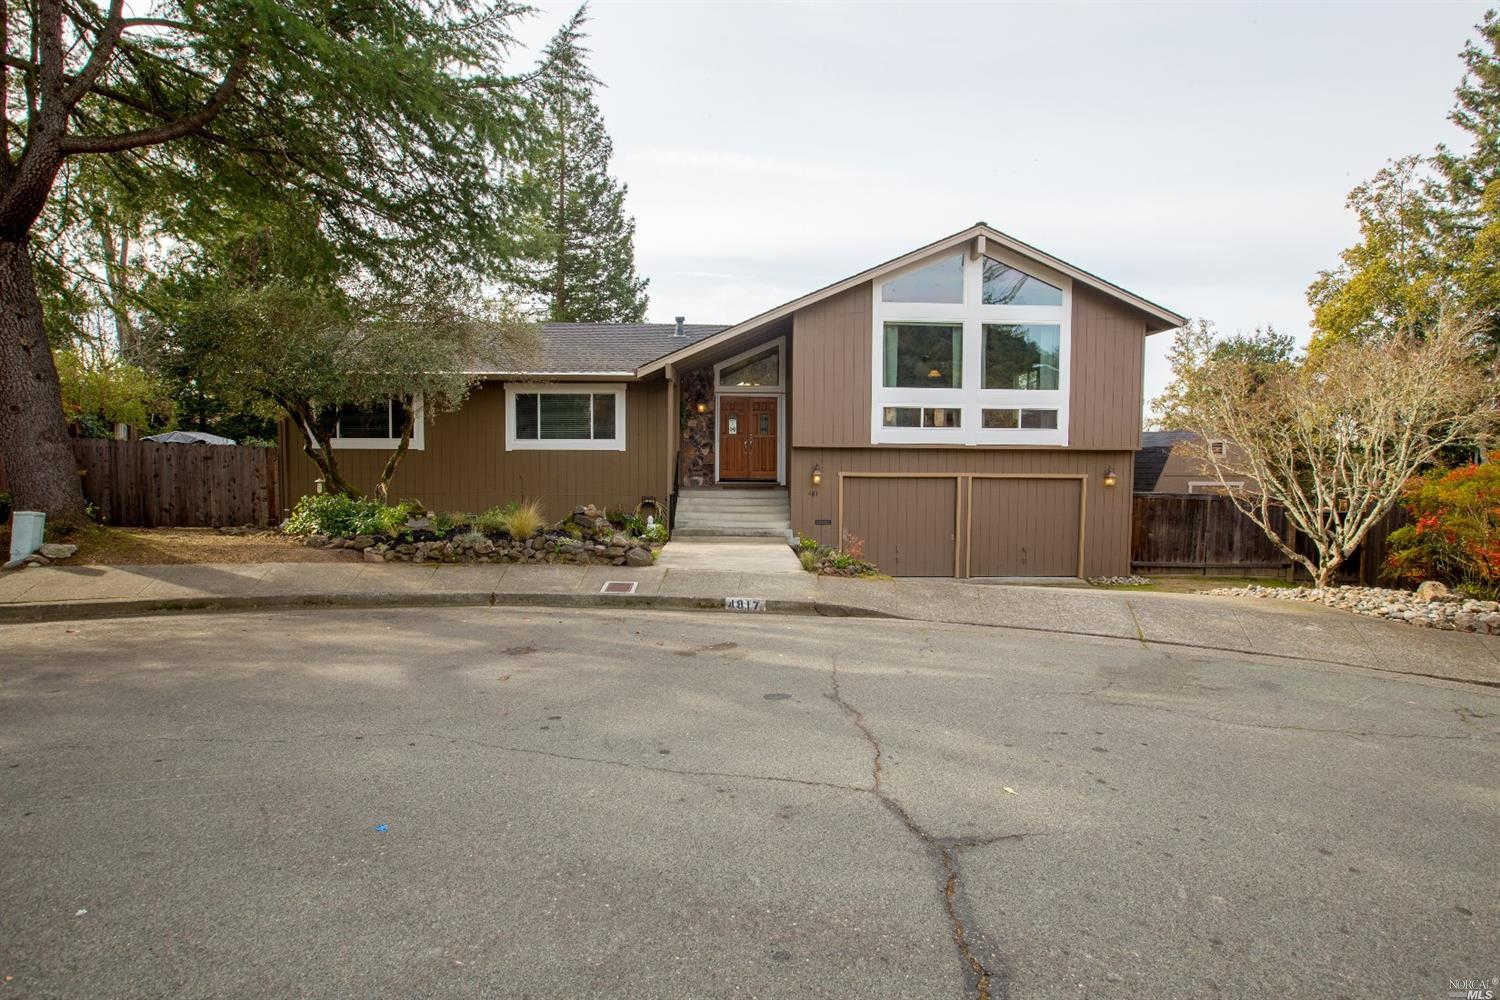 4817 Westminster Place, Santa Rosa, CA 95405 now has a new price of $3,600!